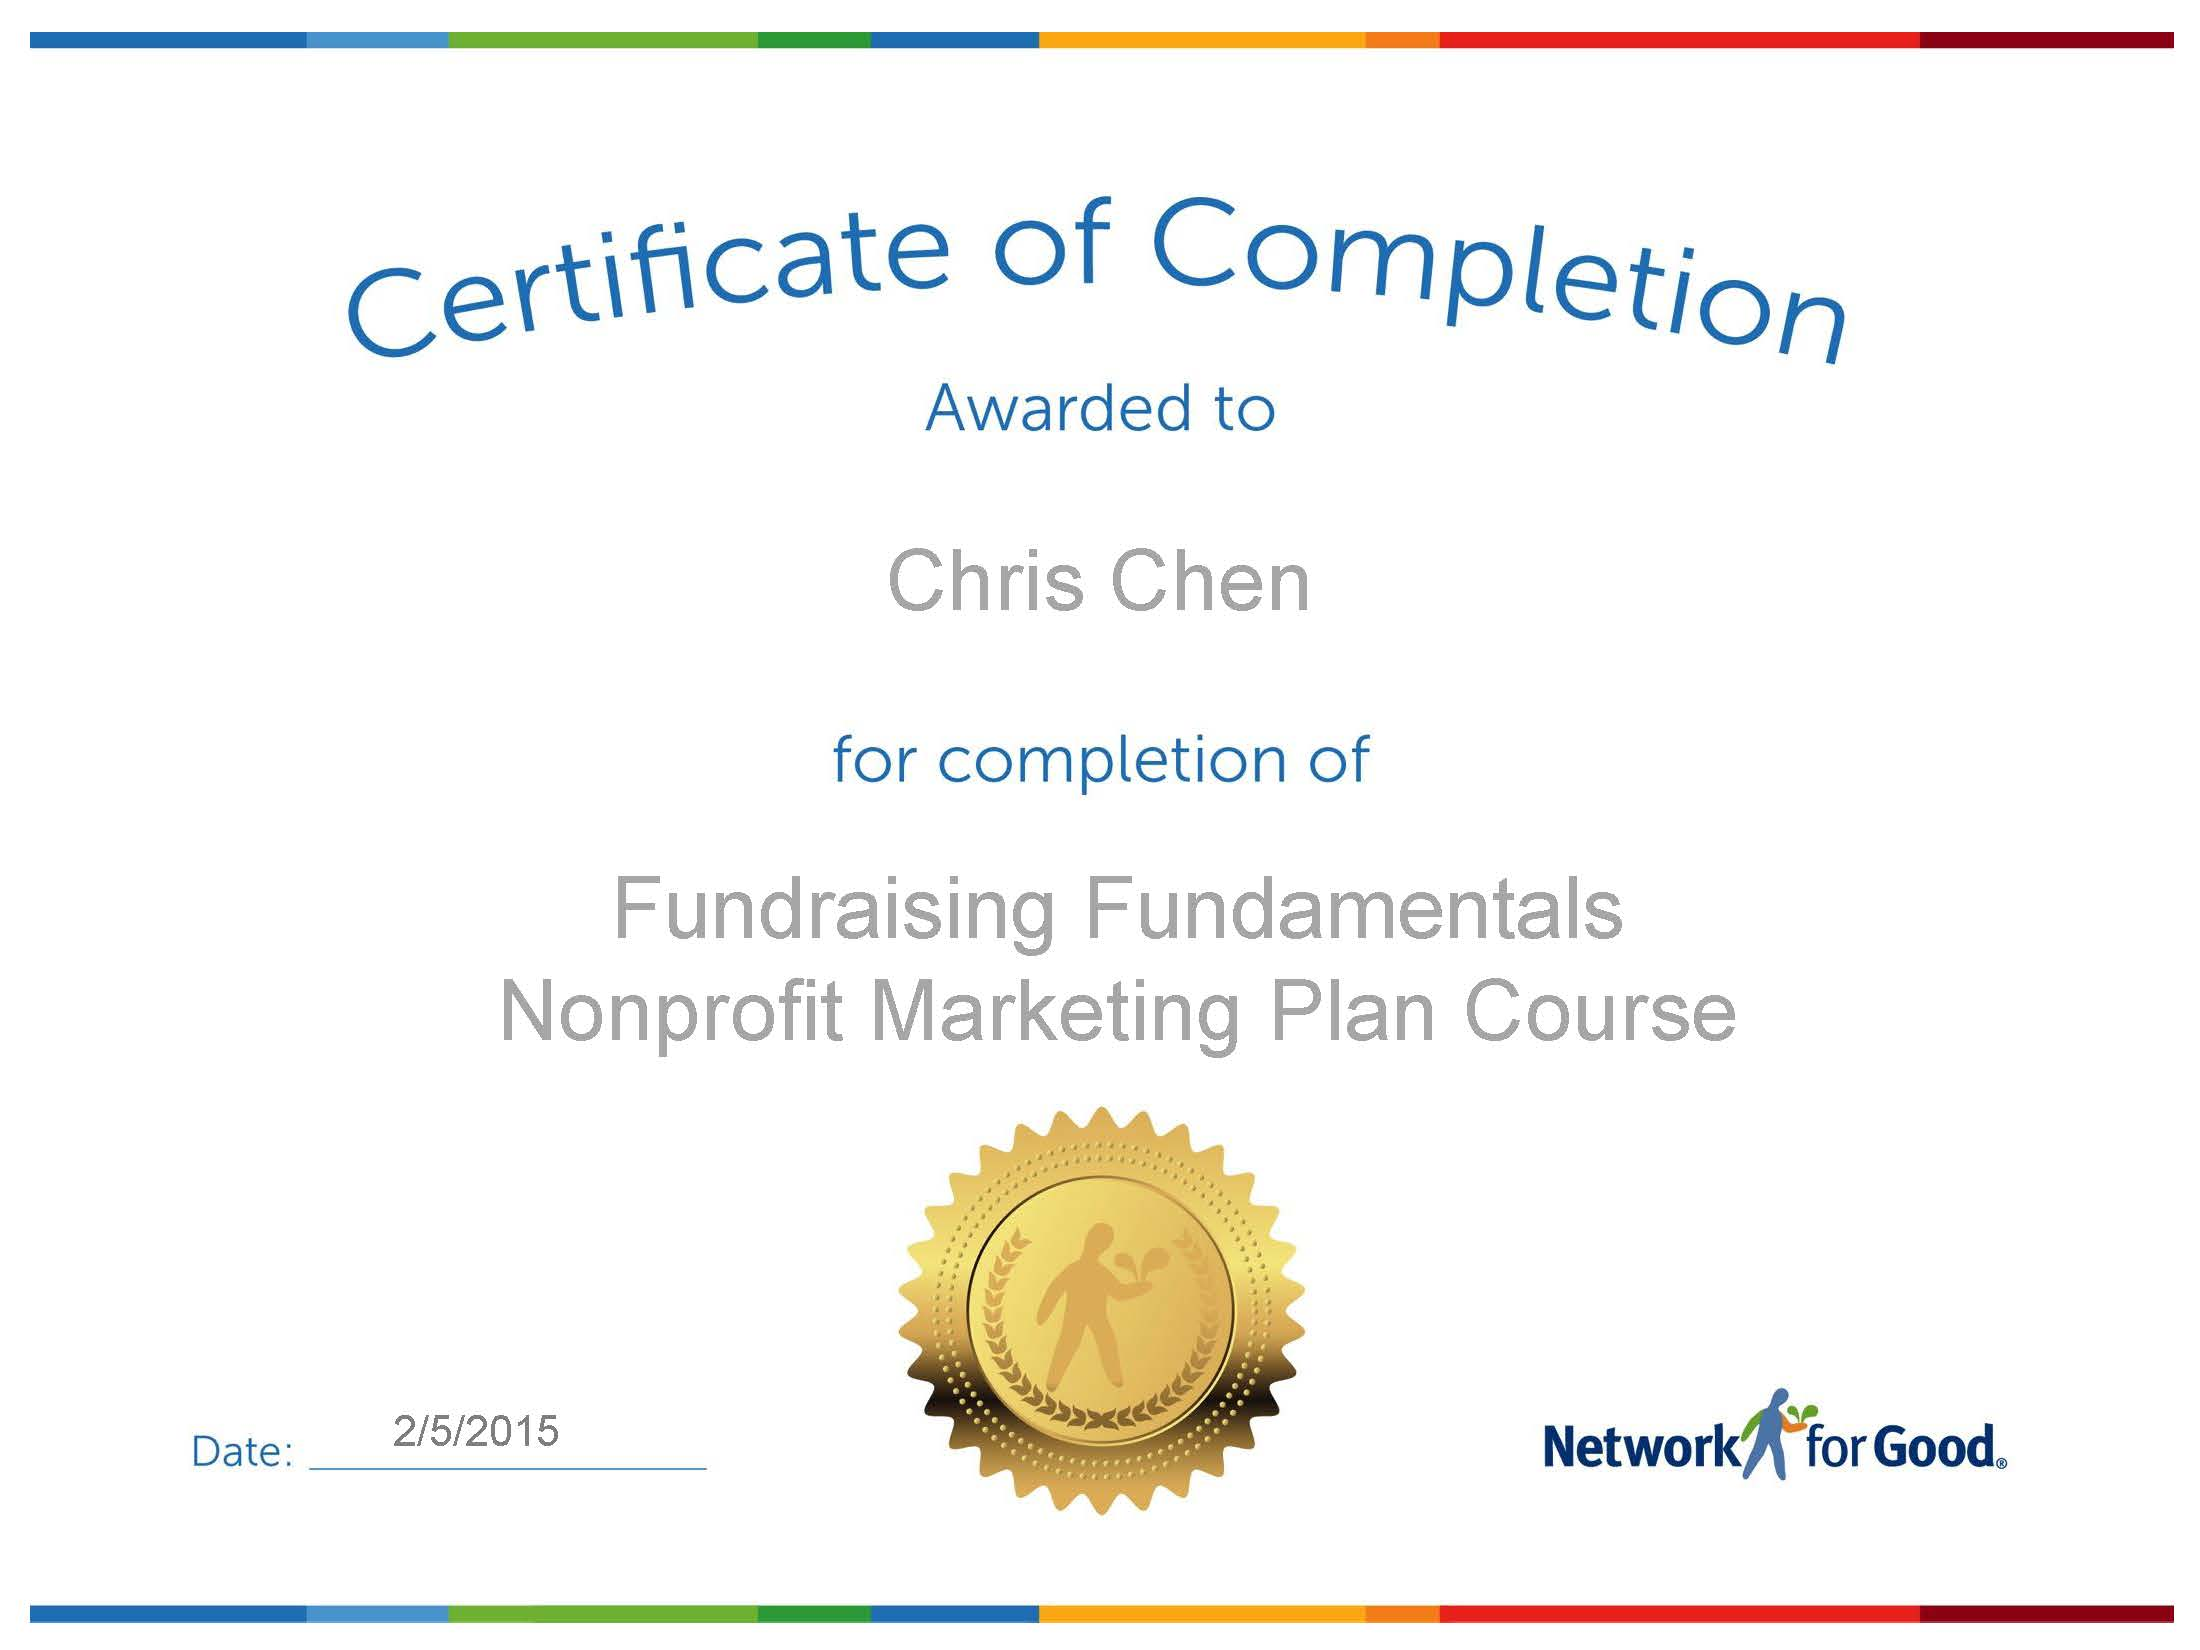 Chrischencompletioncertificateg 22001650 course chrischencompletioncertificateg 22001650 course certificate pinterest certificate yadclub Choice Image